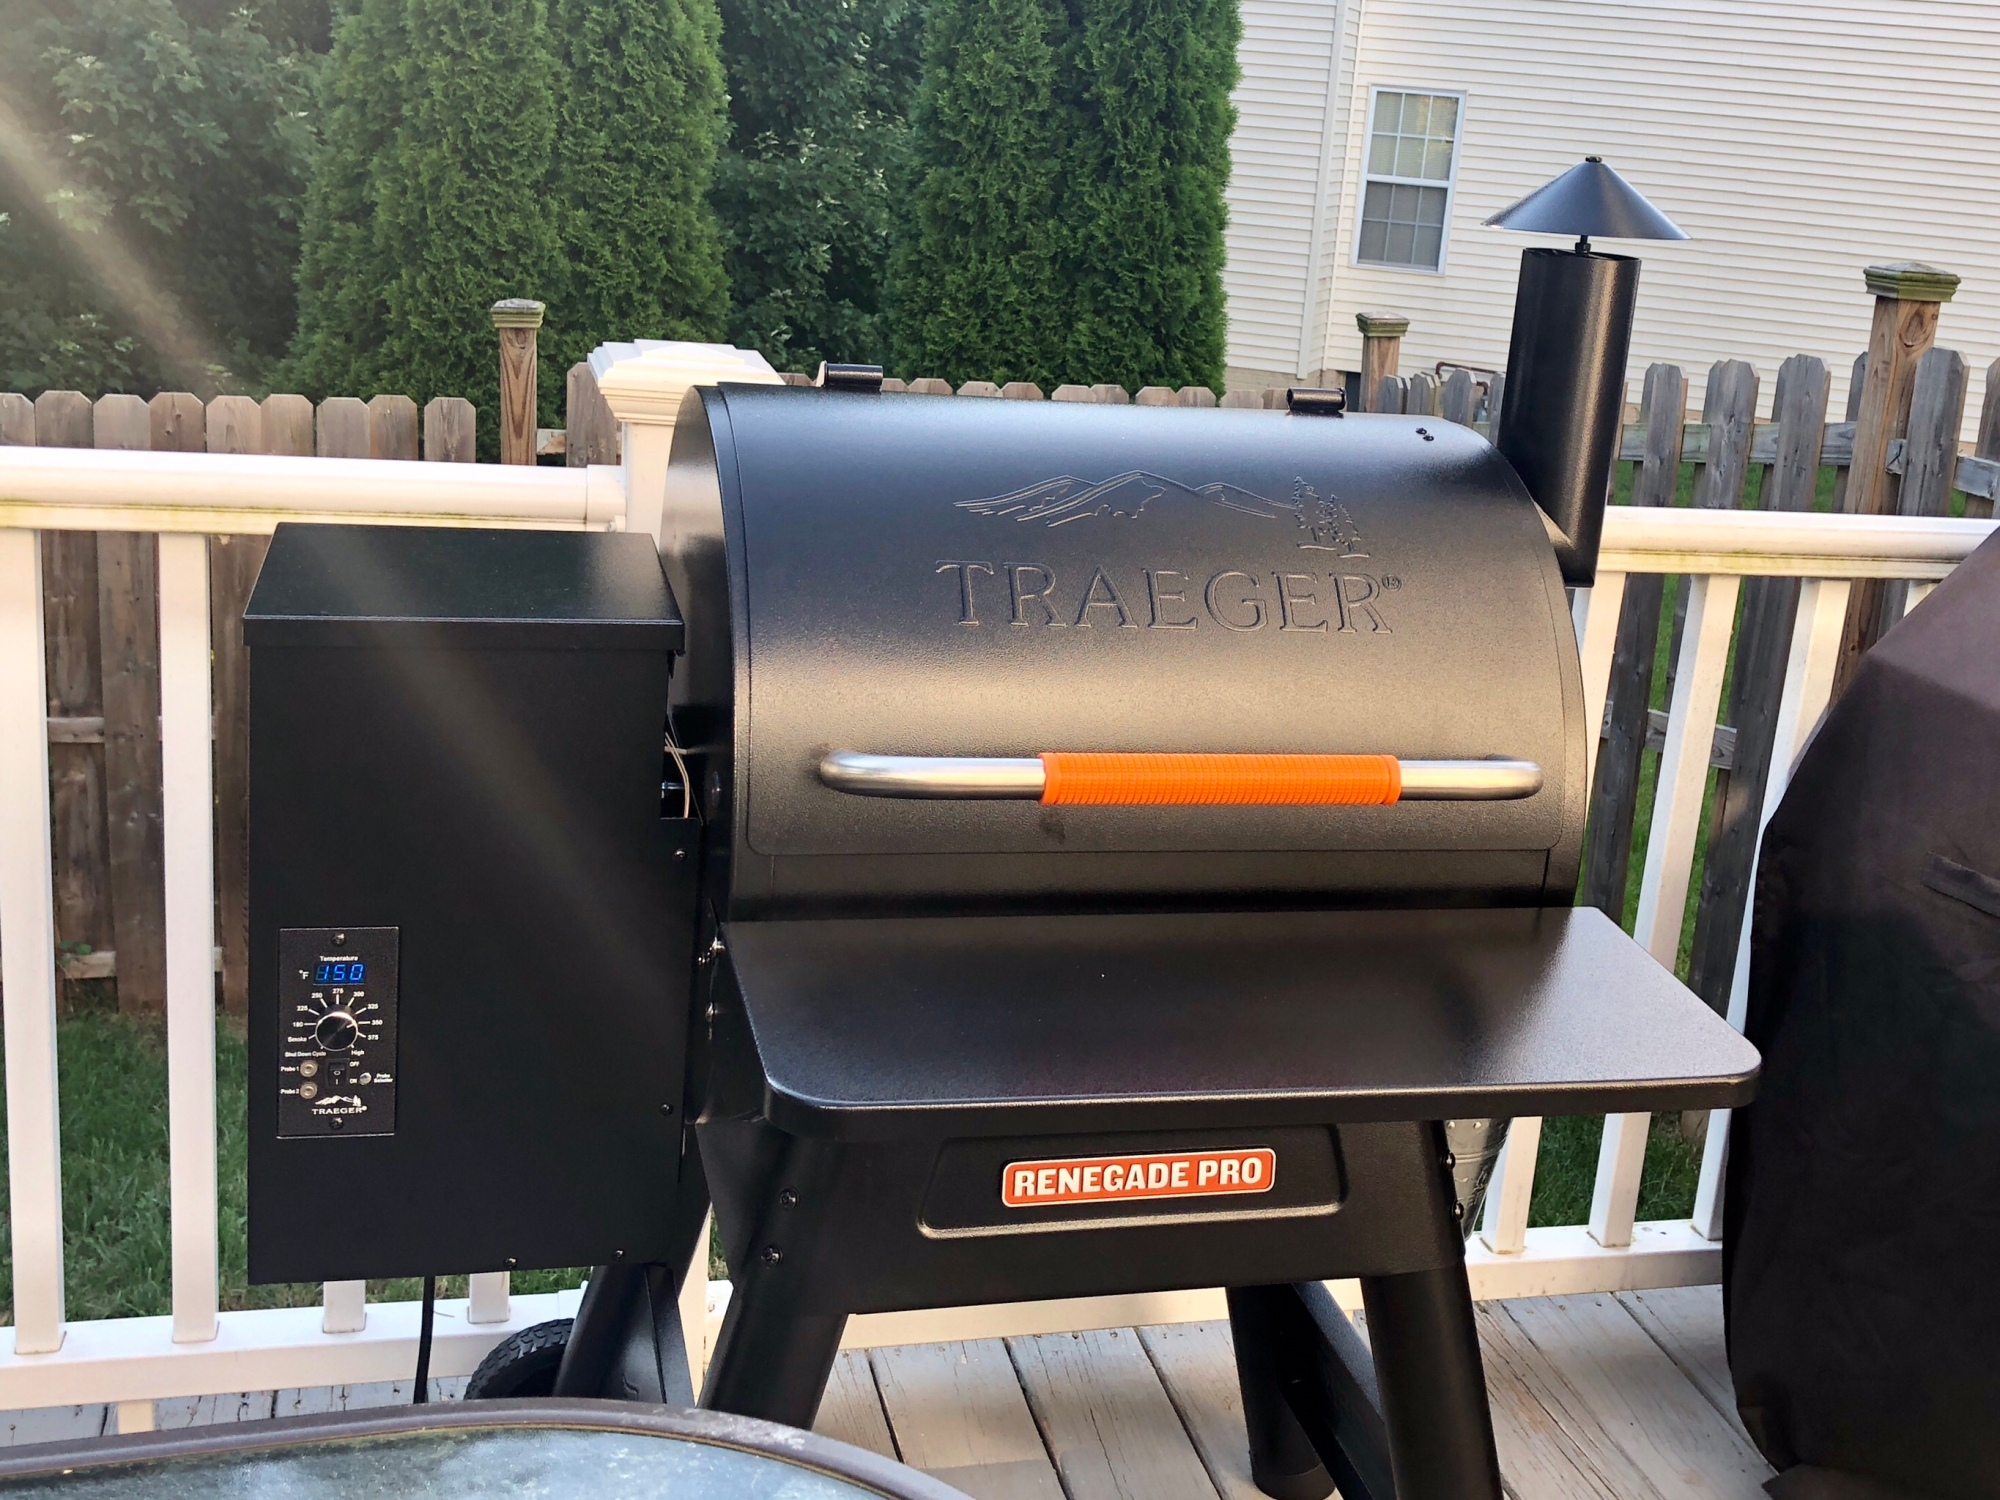 Traeger Renegade Pro grill.